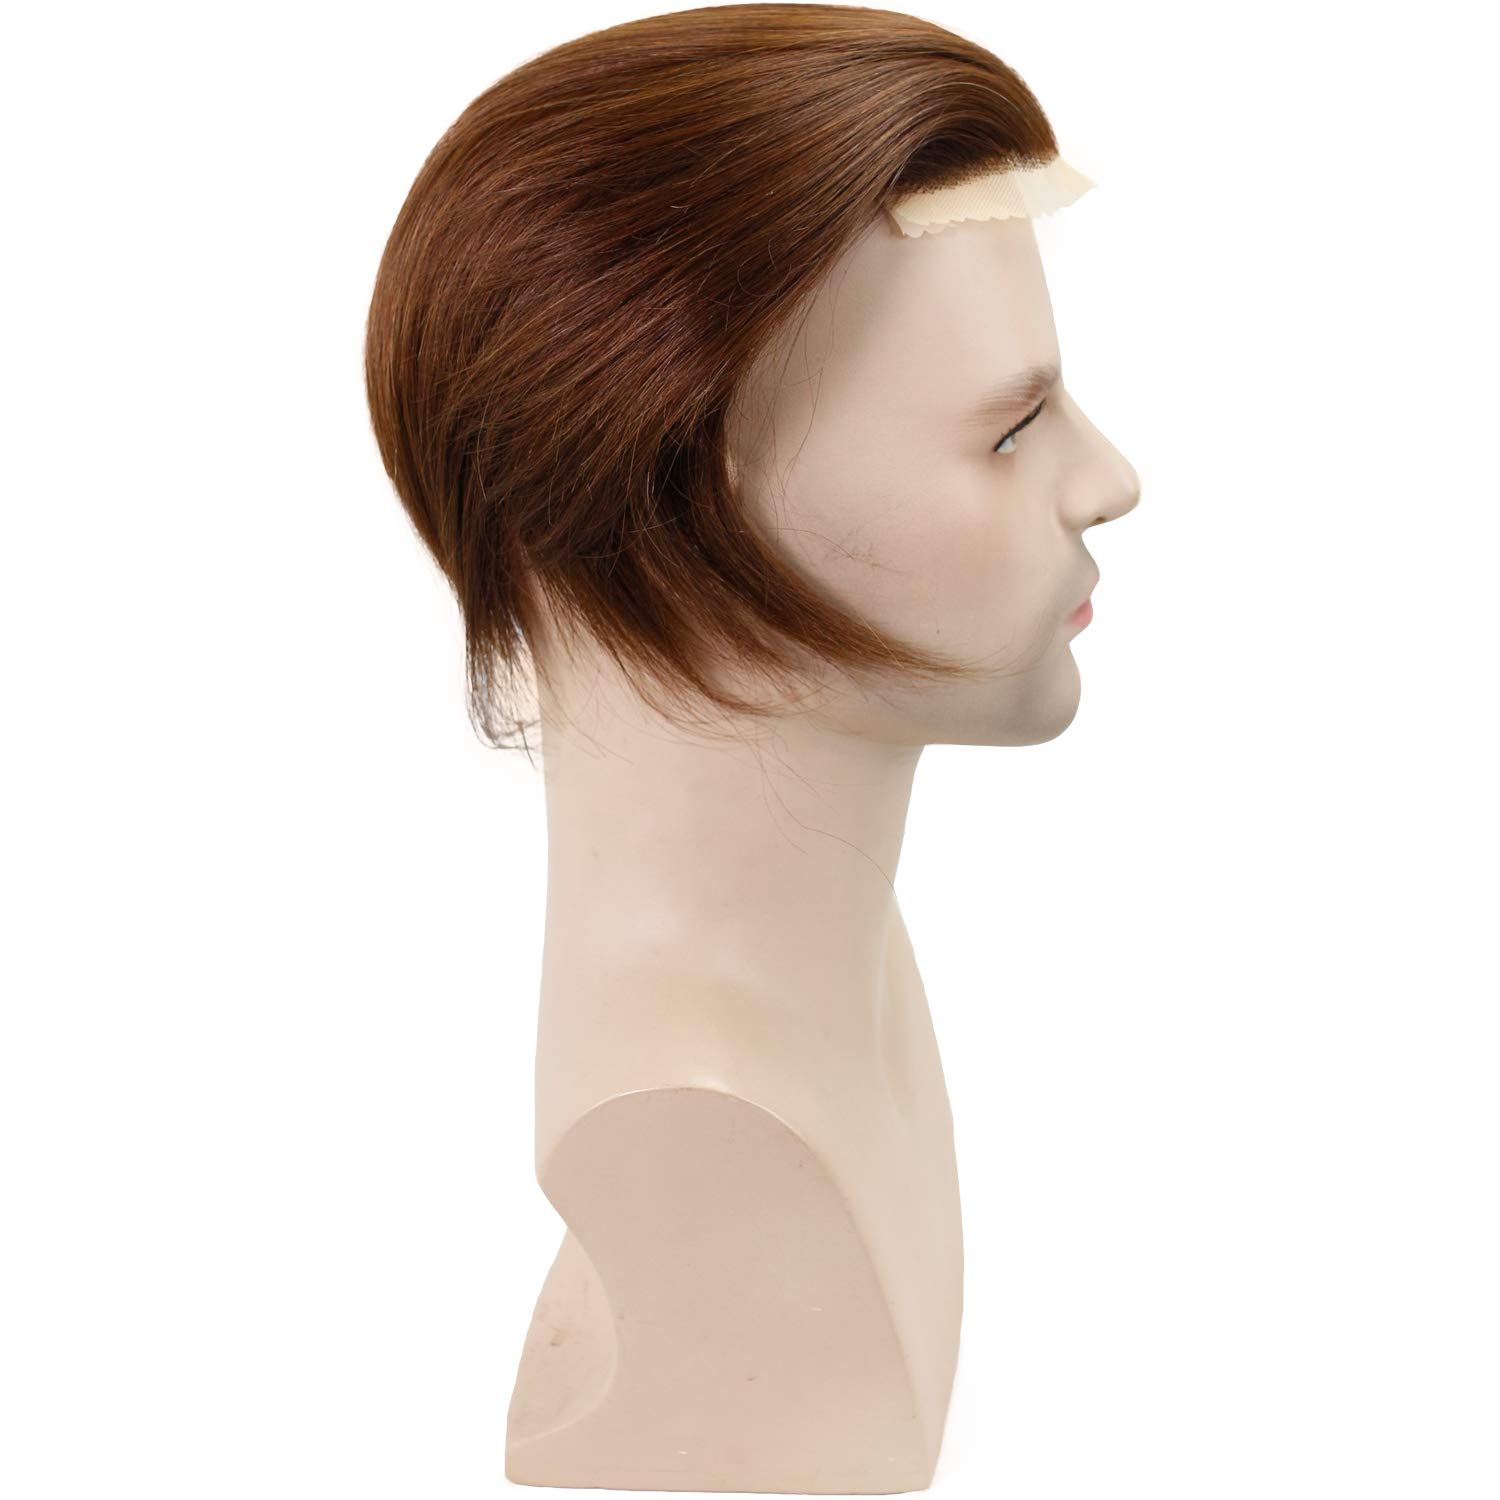 Men's Toupee Hairpieces 100 European Virgin Human Hair Replacement System Pieces Swiss Lace Net with PU Base Size 4.33x6.69 inch